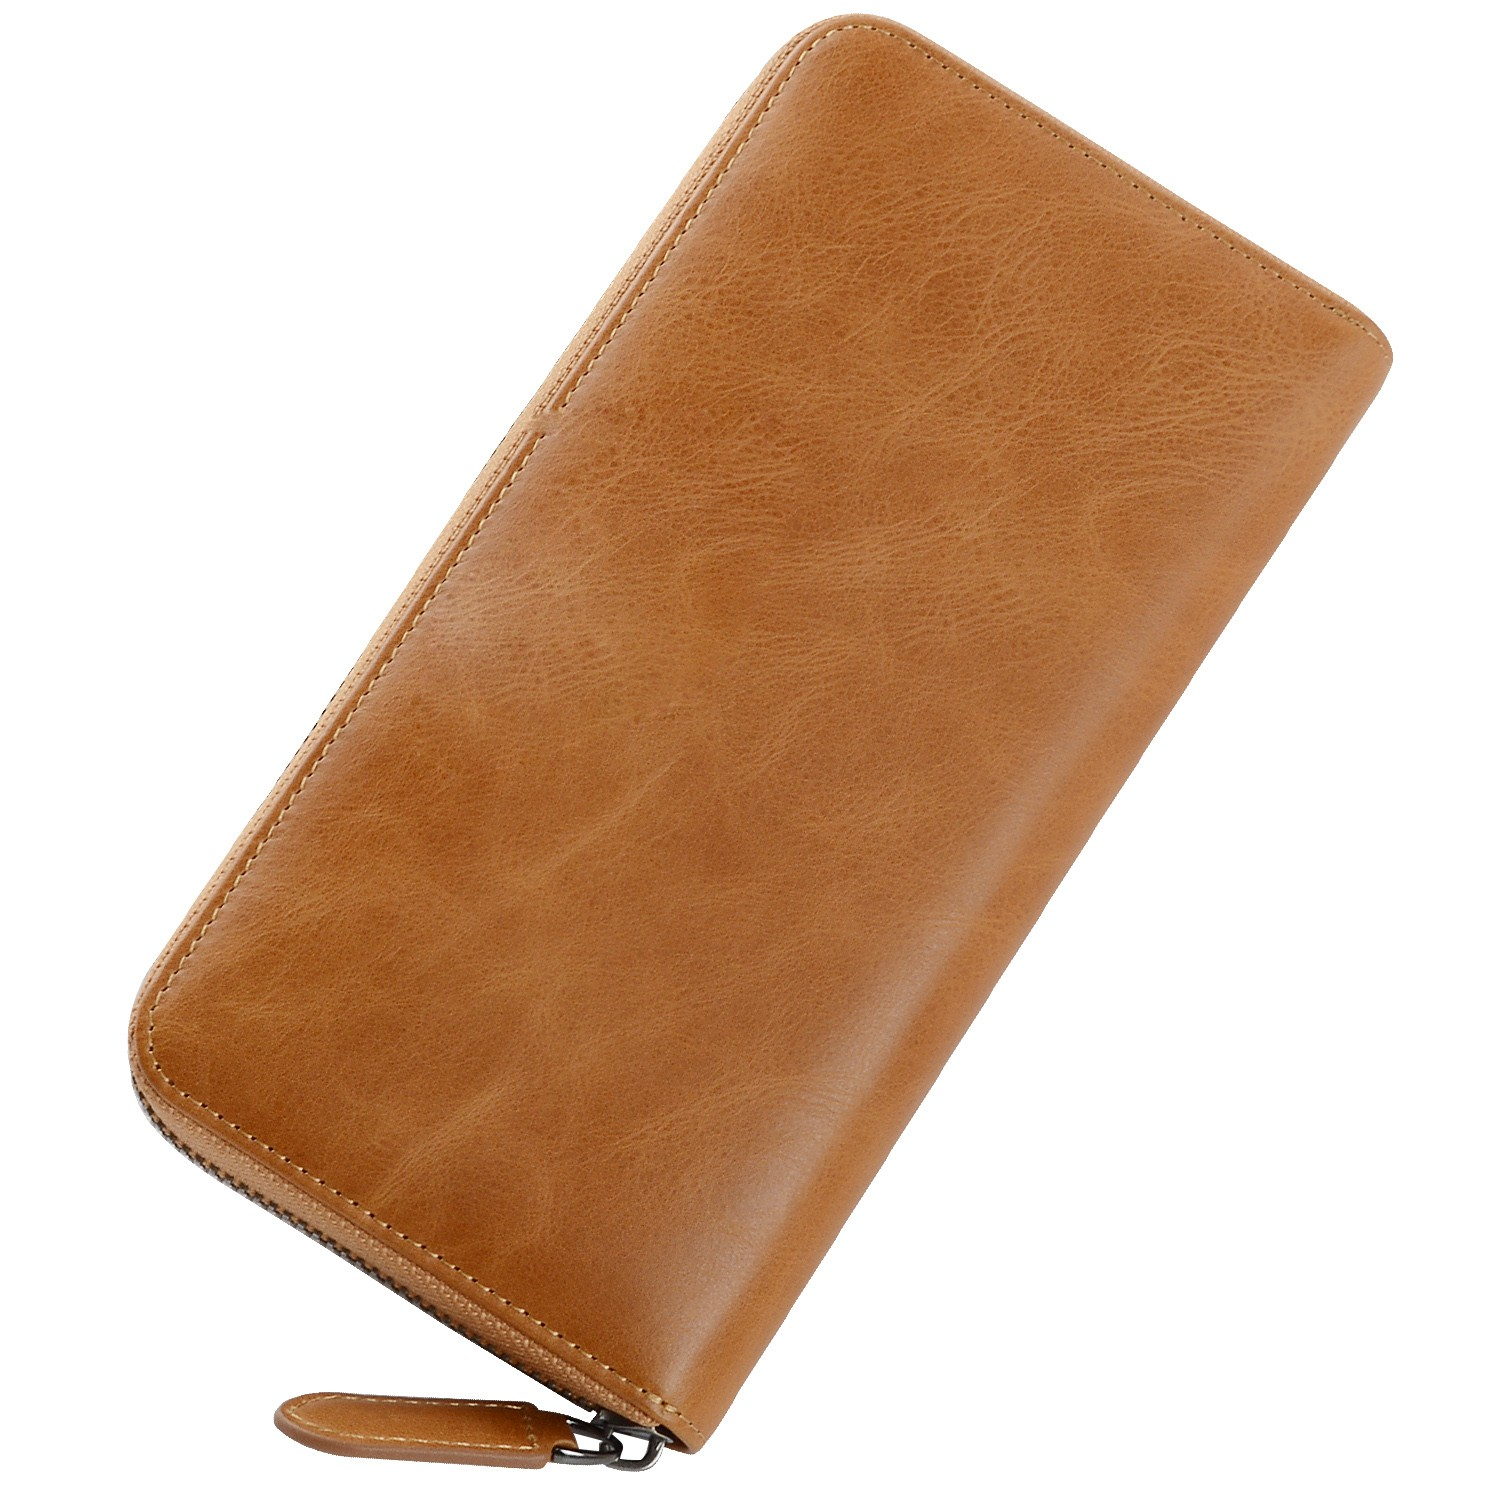 AIVI leather card case wallet manufacturer for iphone X-1